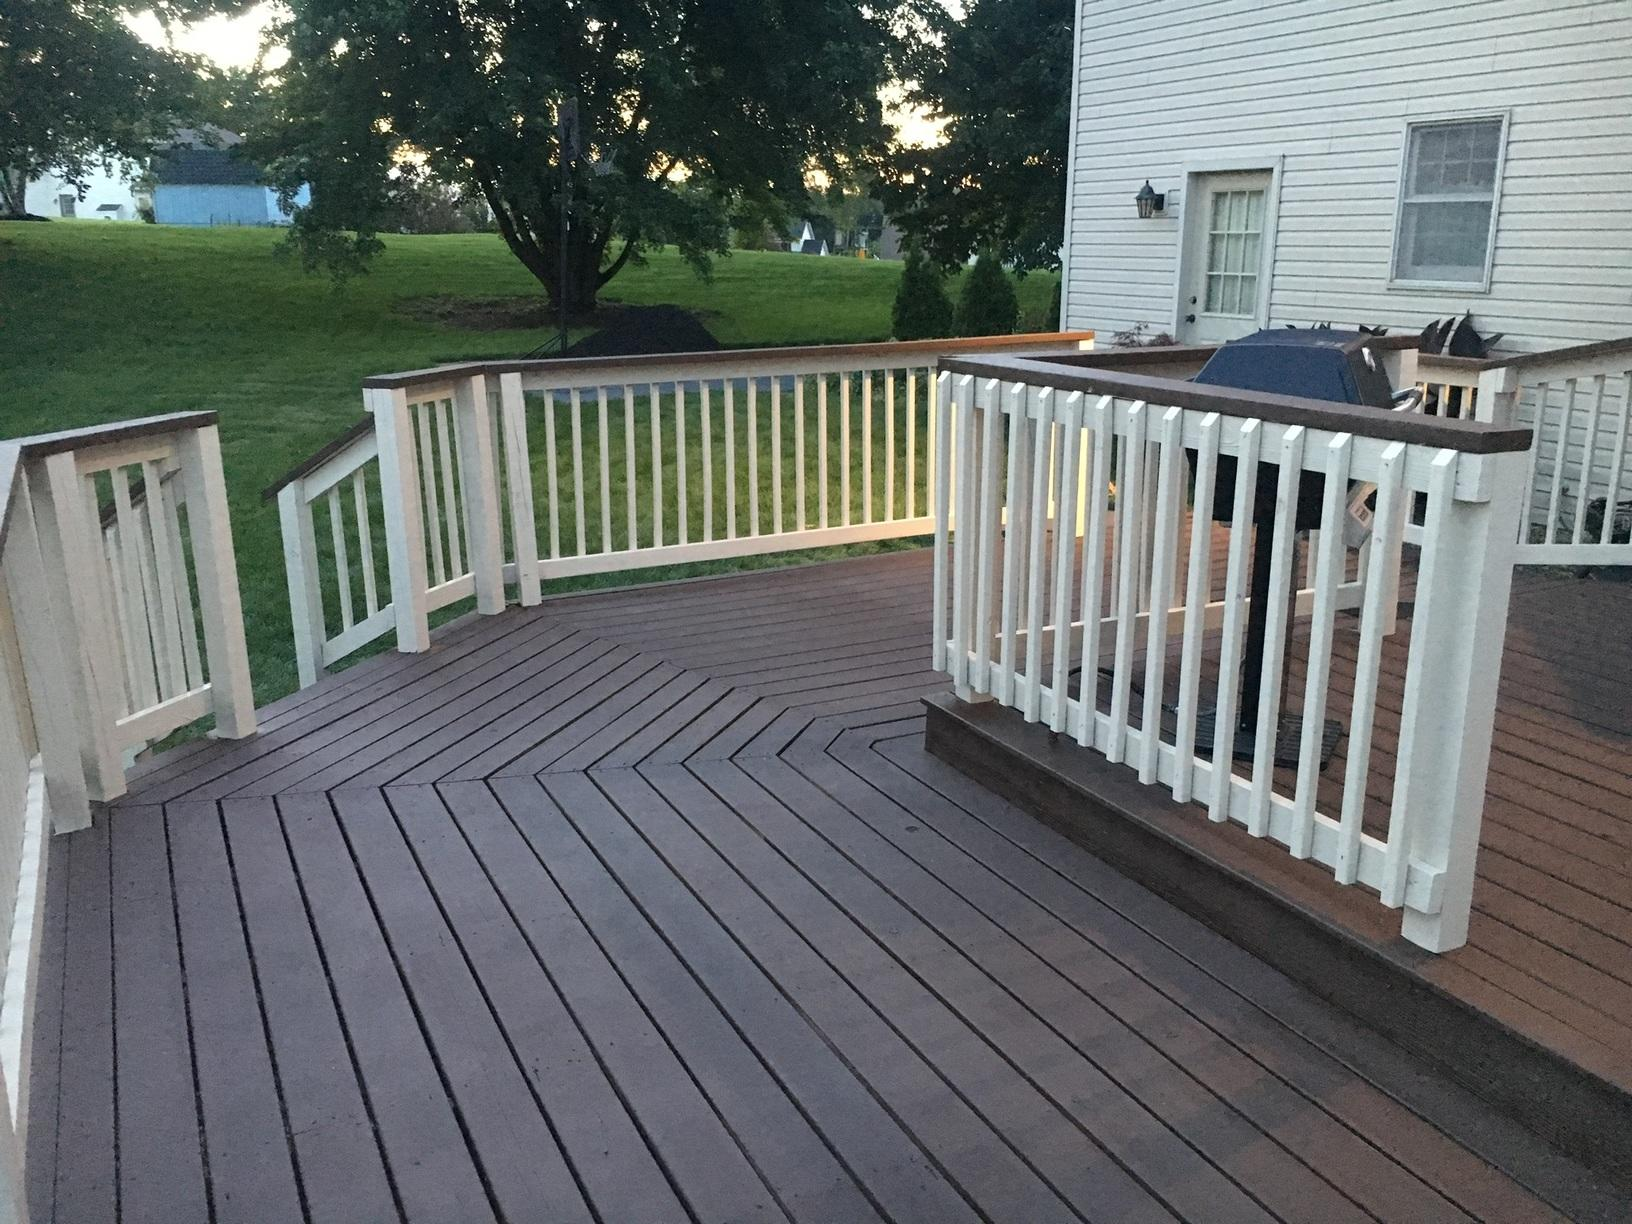 Deck Ceramic Coating Applied in Highspire, PA